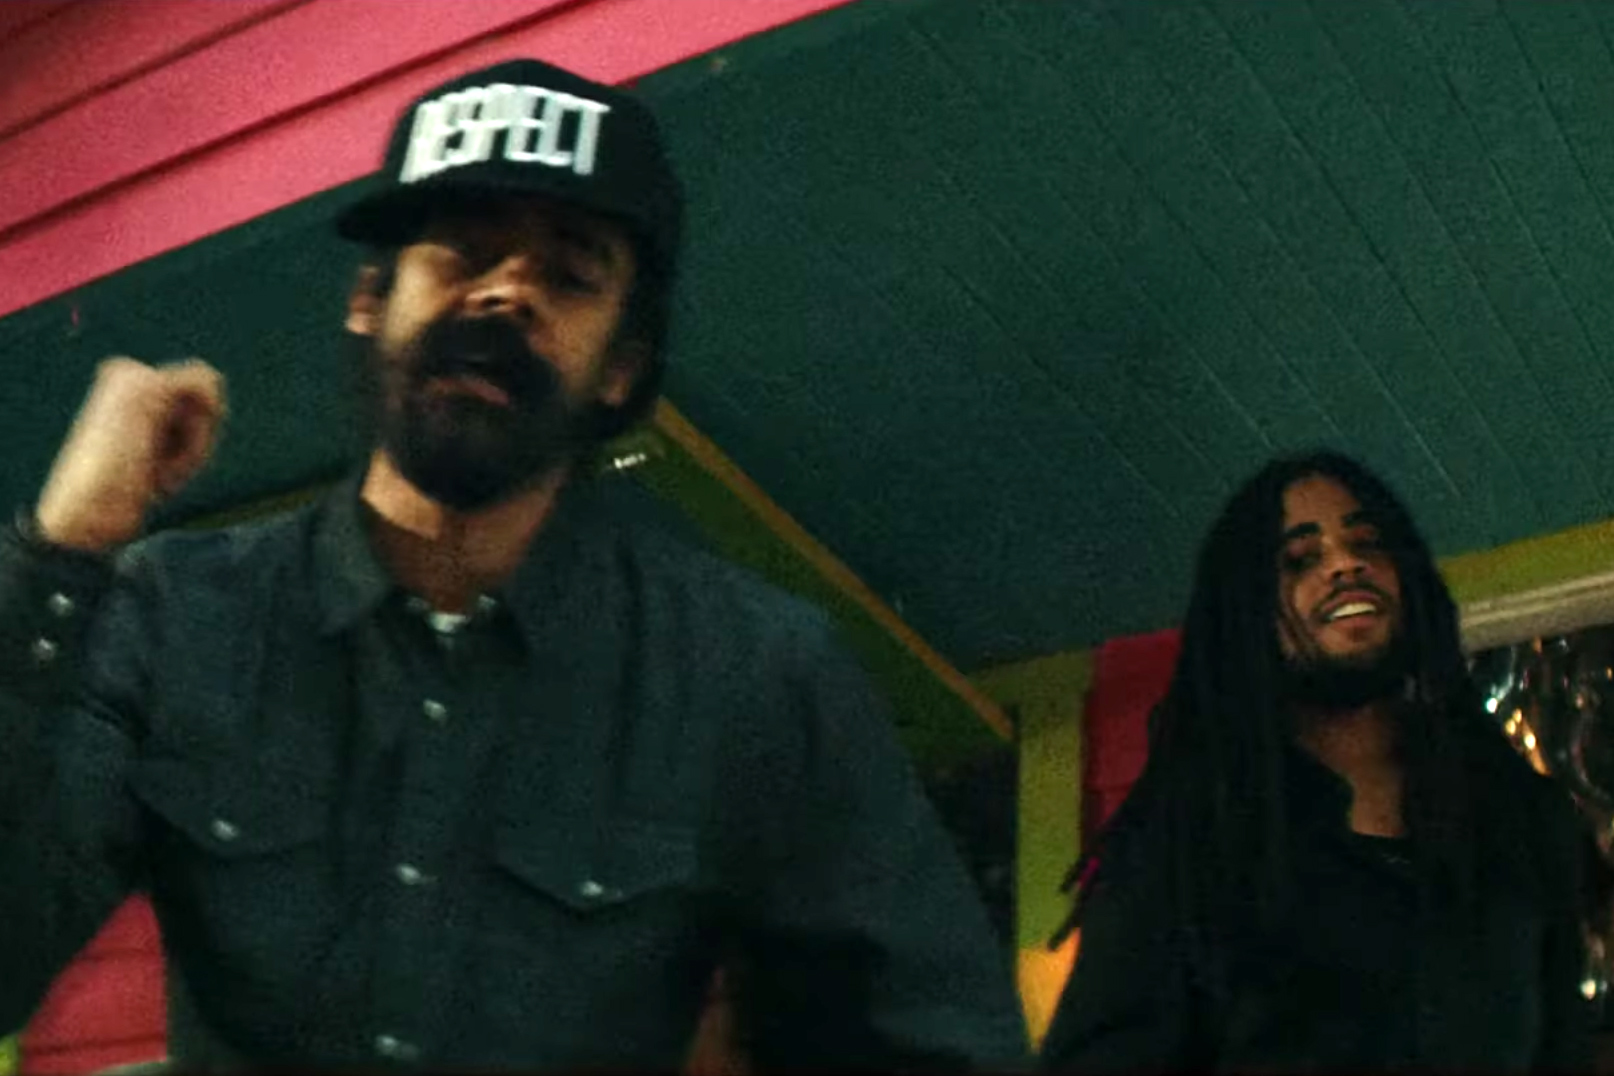 Skip Marley Explores Miami's Little Haiti in 'That's Not